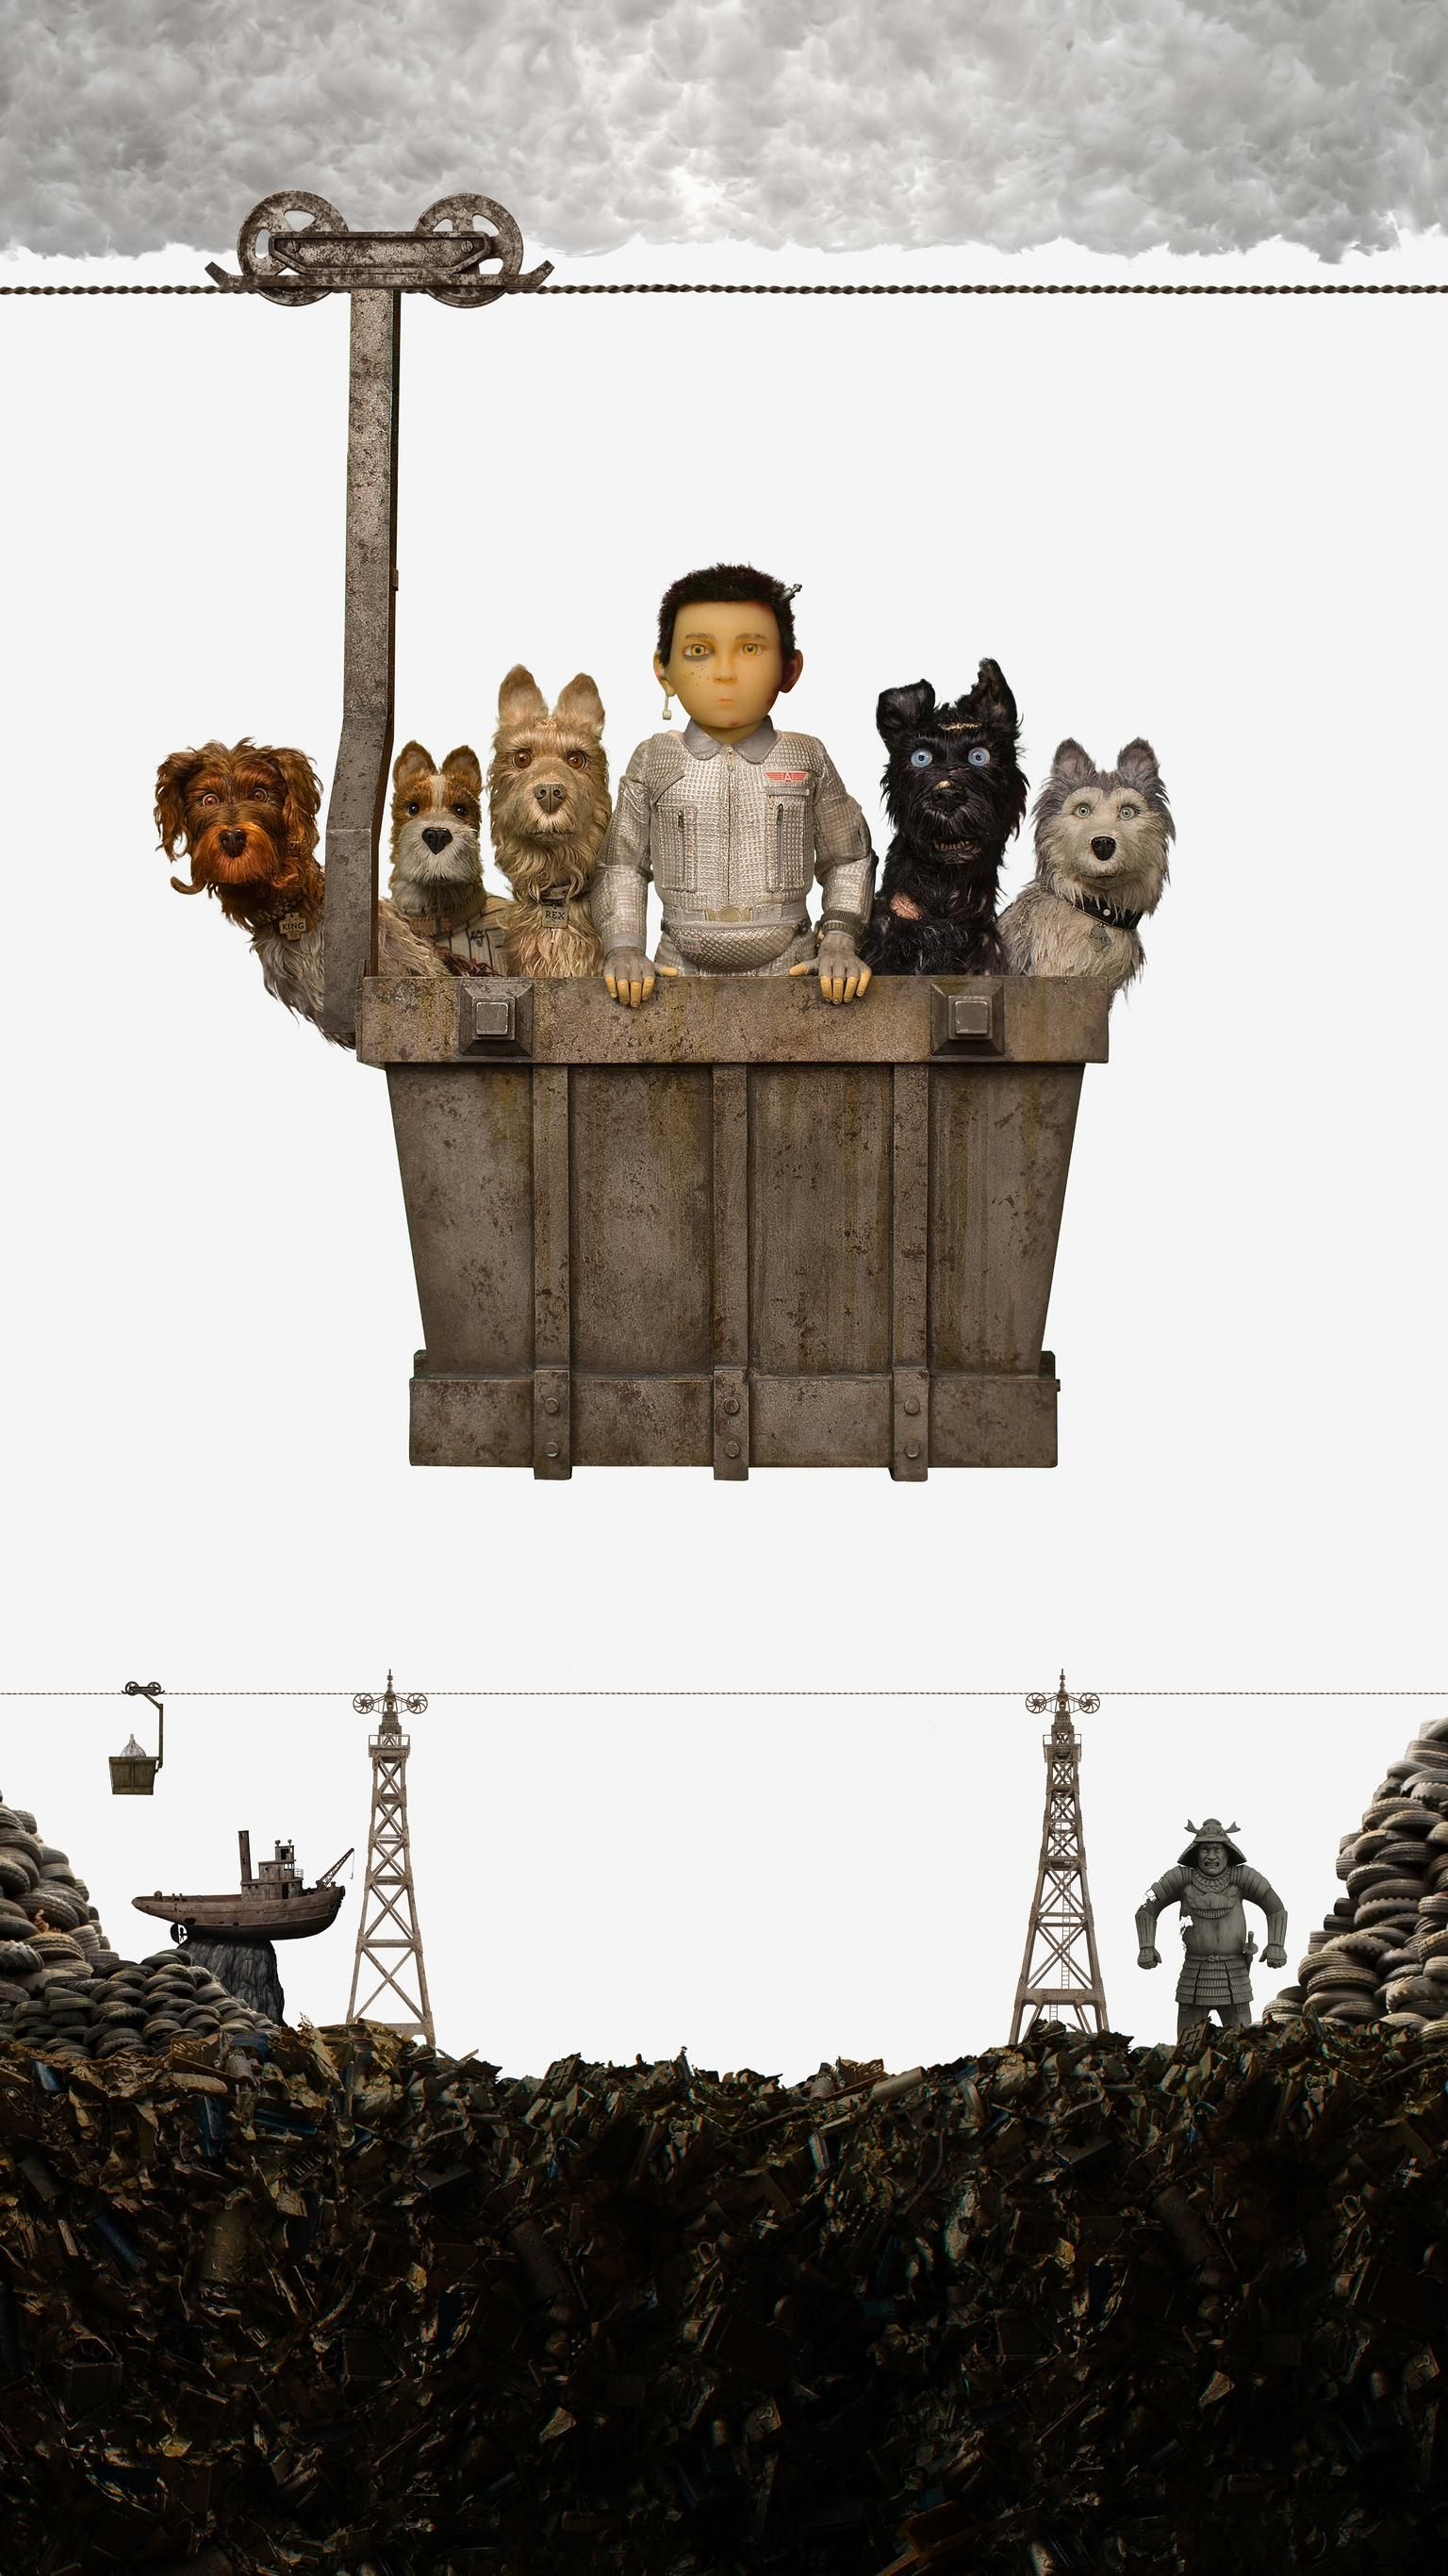 Isle Of Dogs 2018 Phone Wallpaper Moviemania Isle Of Dogs Movie Isle Of Dogs Film Posters Art